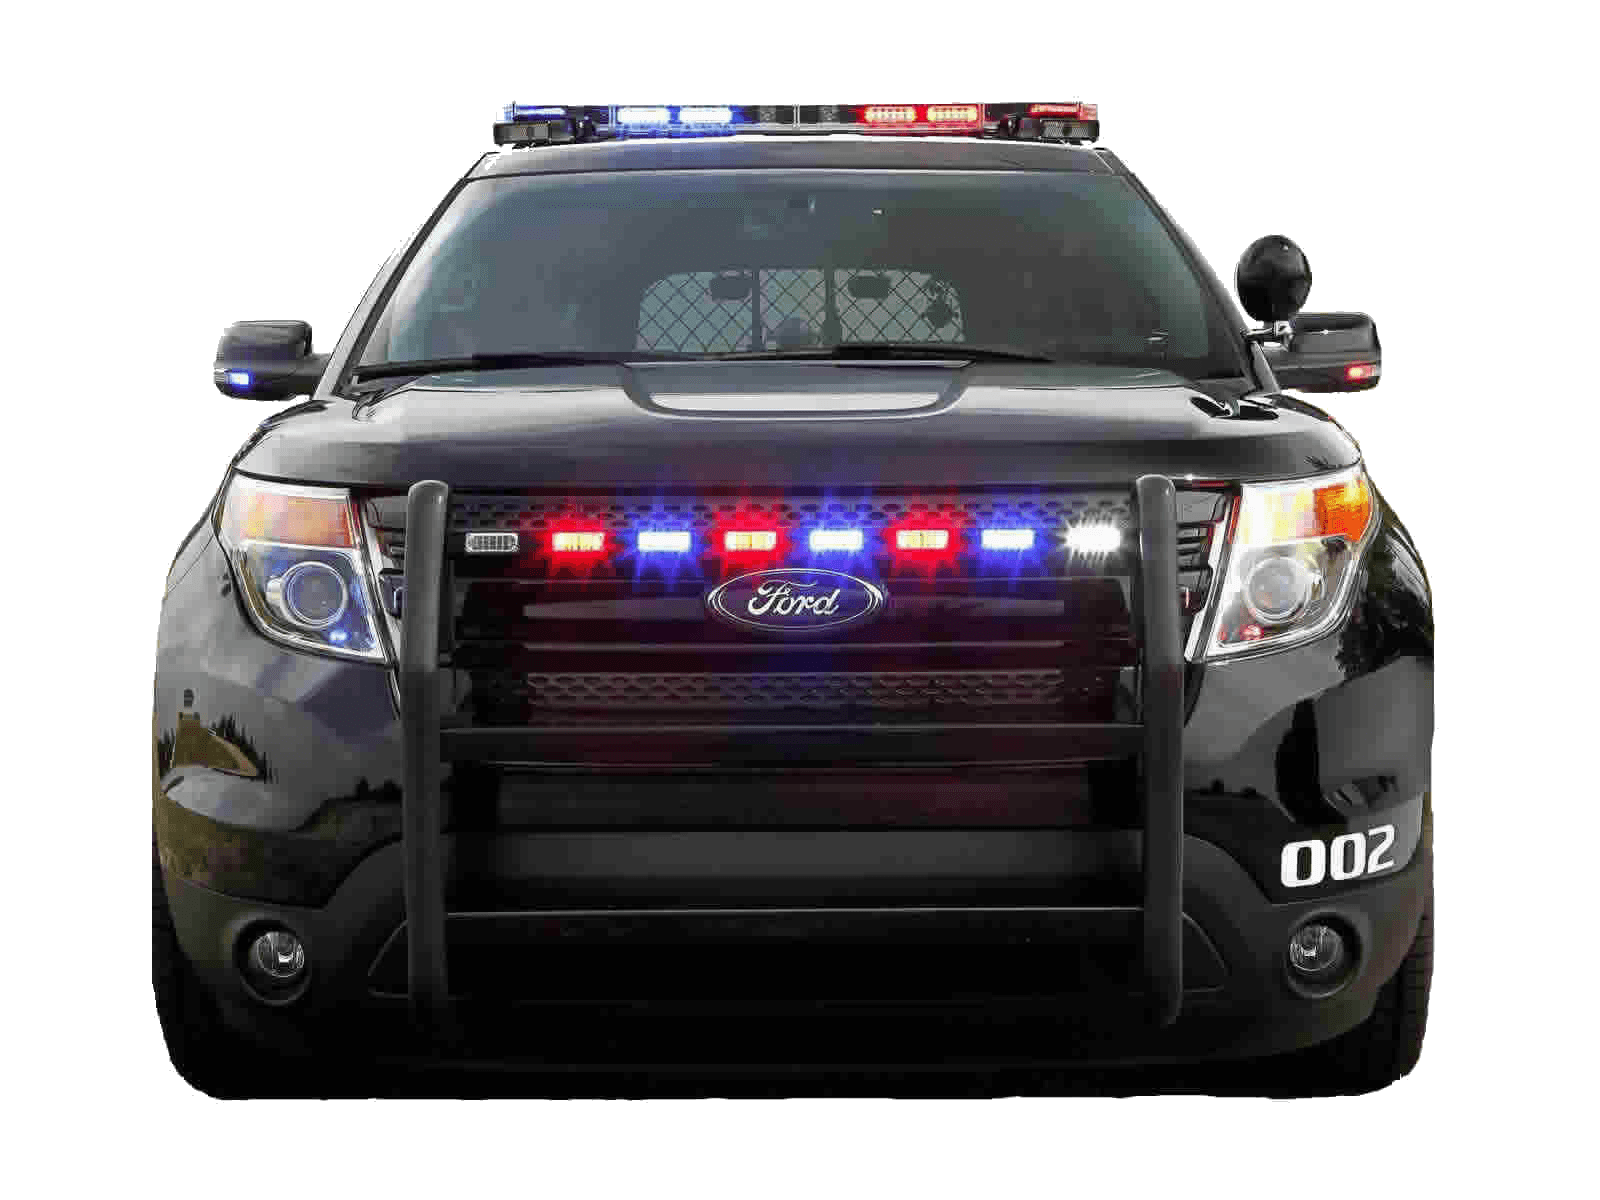 Police car clipart free picture royalty free stock Us Police Car transparent PNG - StickPNG picture royalty free stock